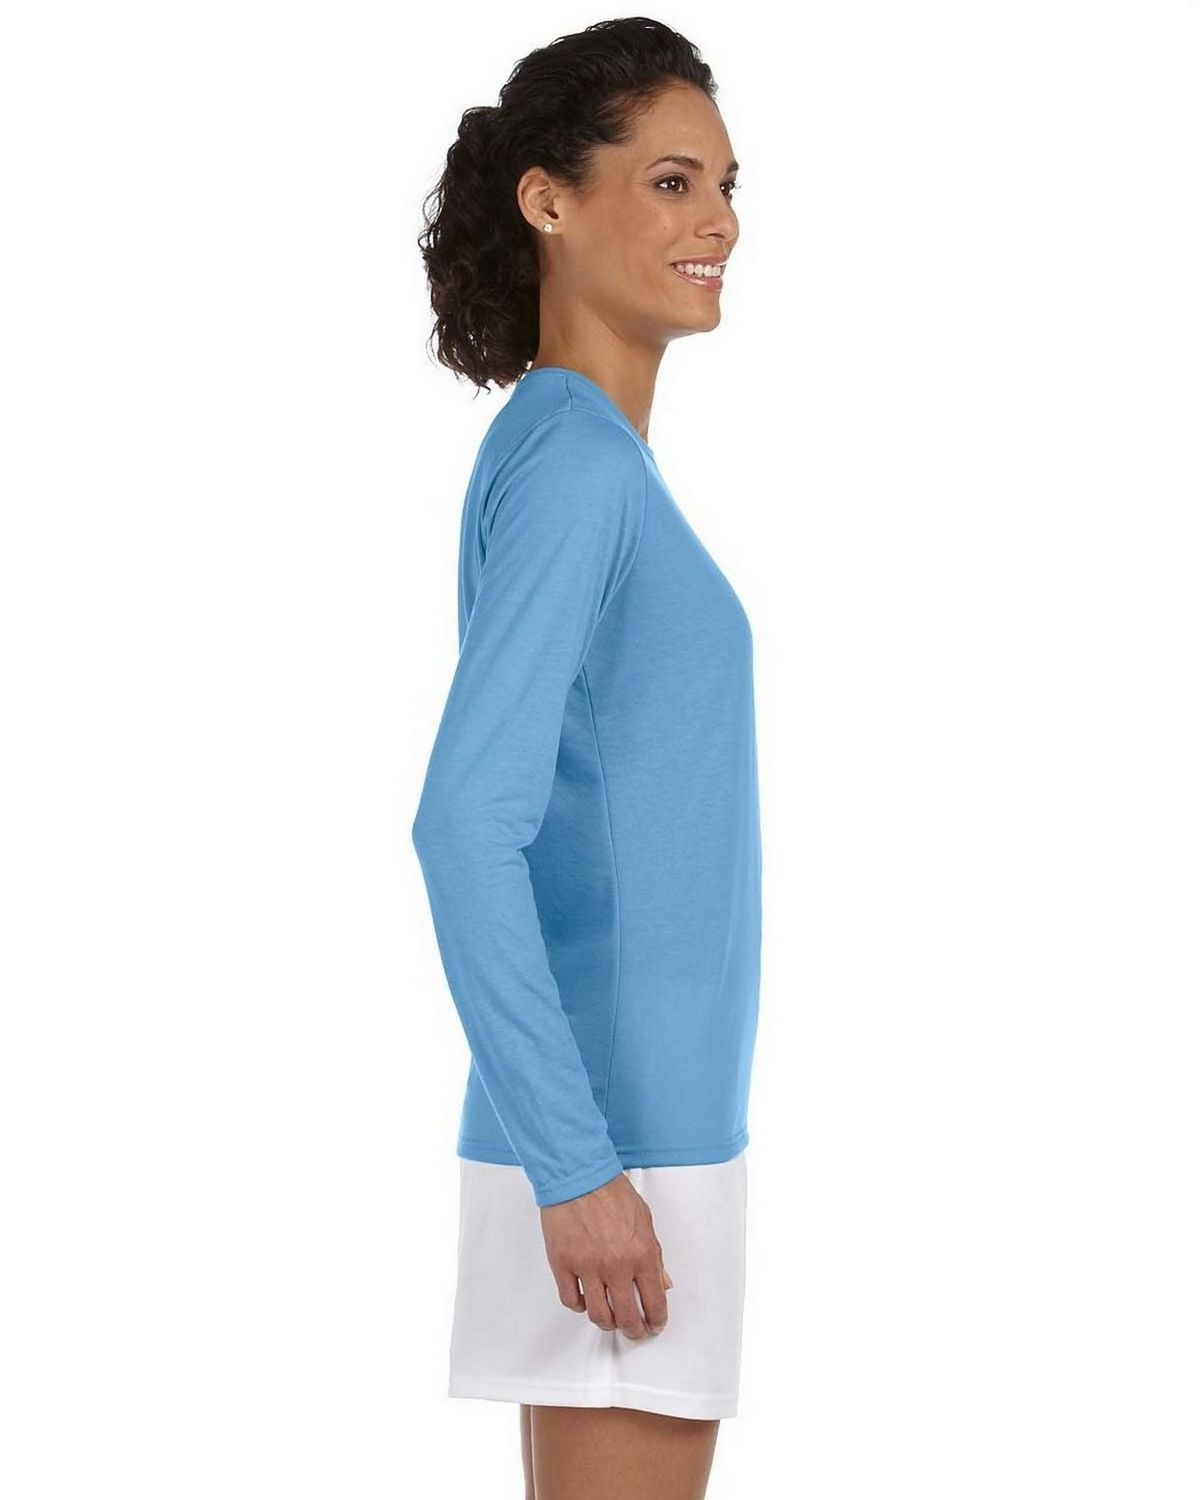 Gildan g424l performance long sleeve t shirt size chart for Gildan brand t shirt size chart